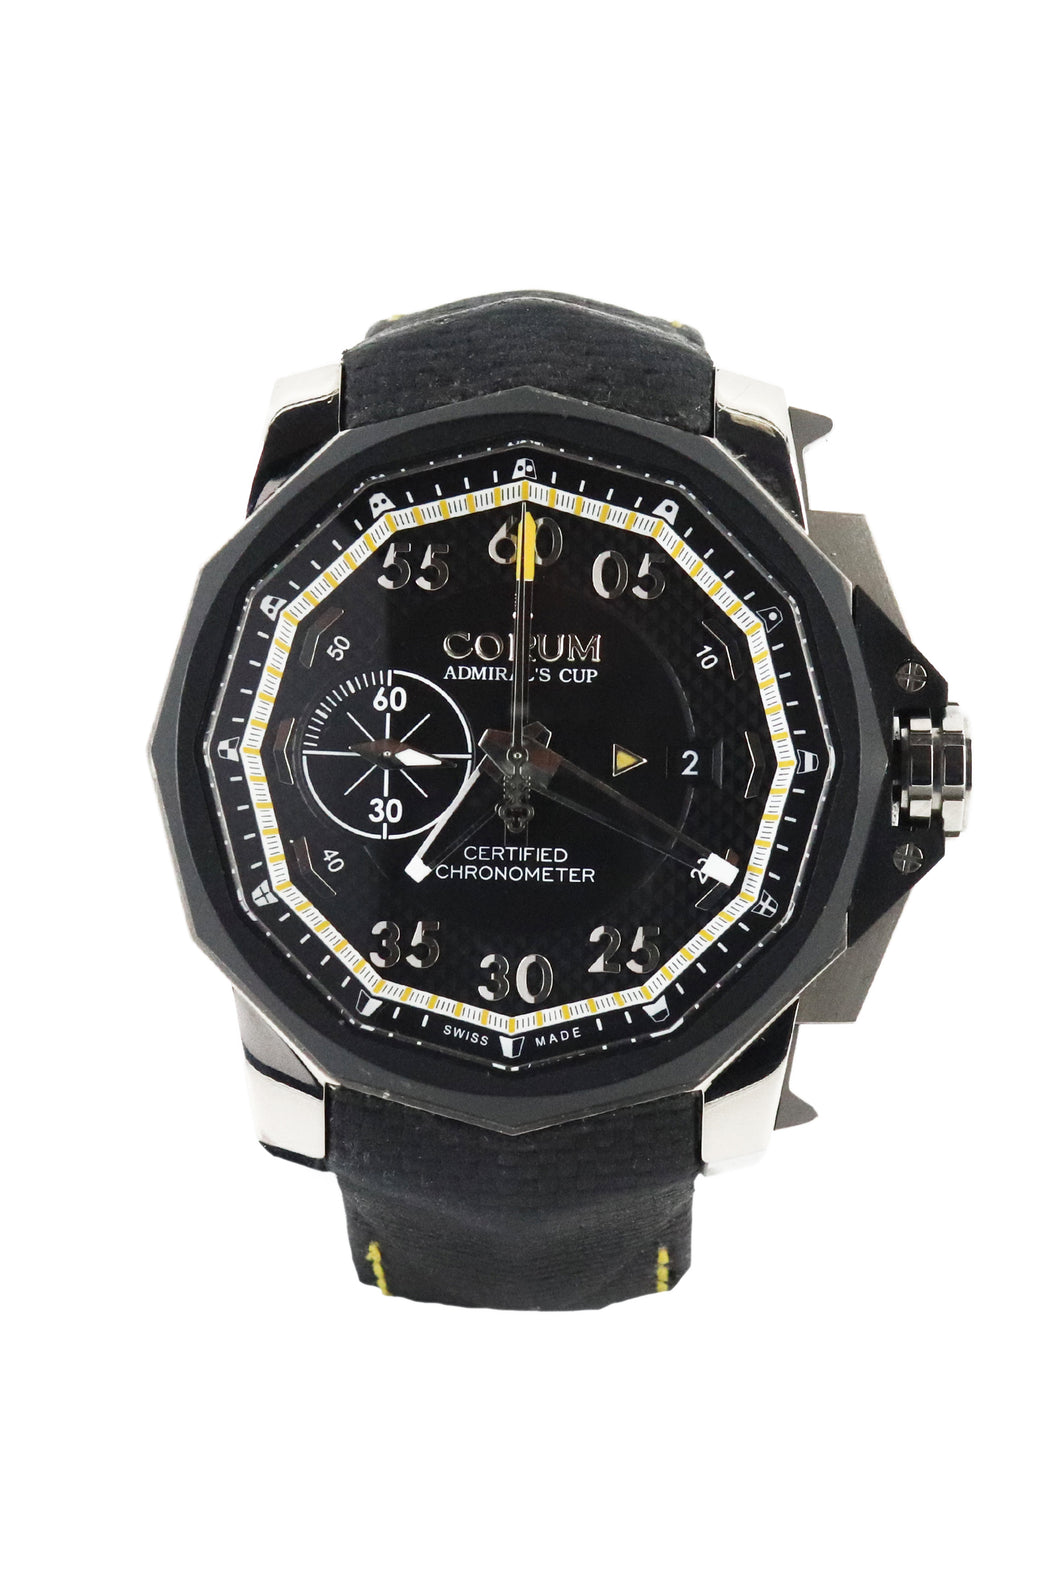 Corum Admirals Cup Seafender 48mm Limited Edition SOLD